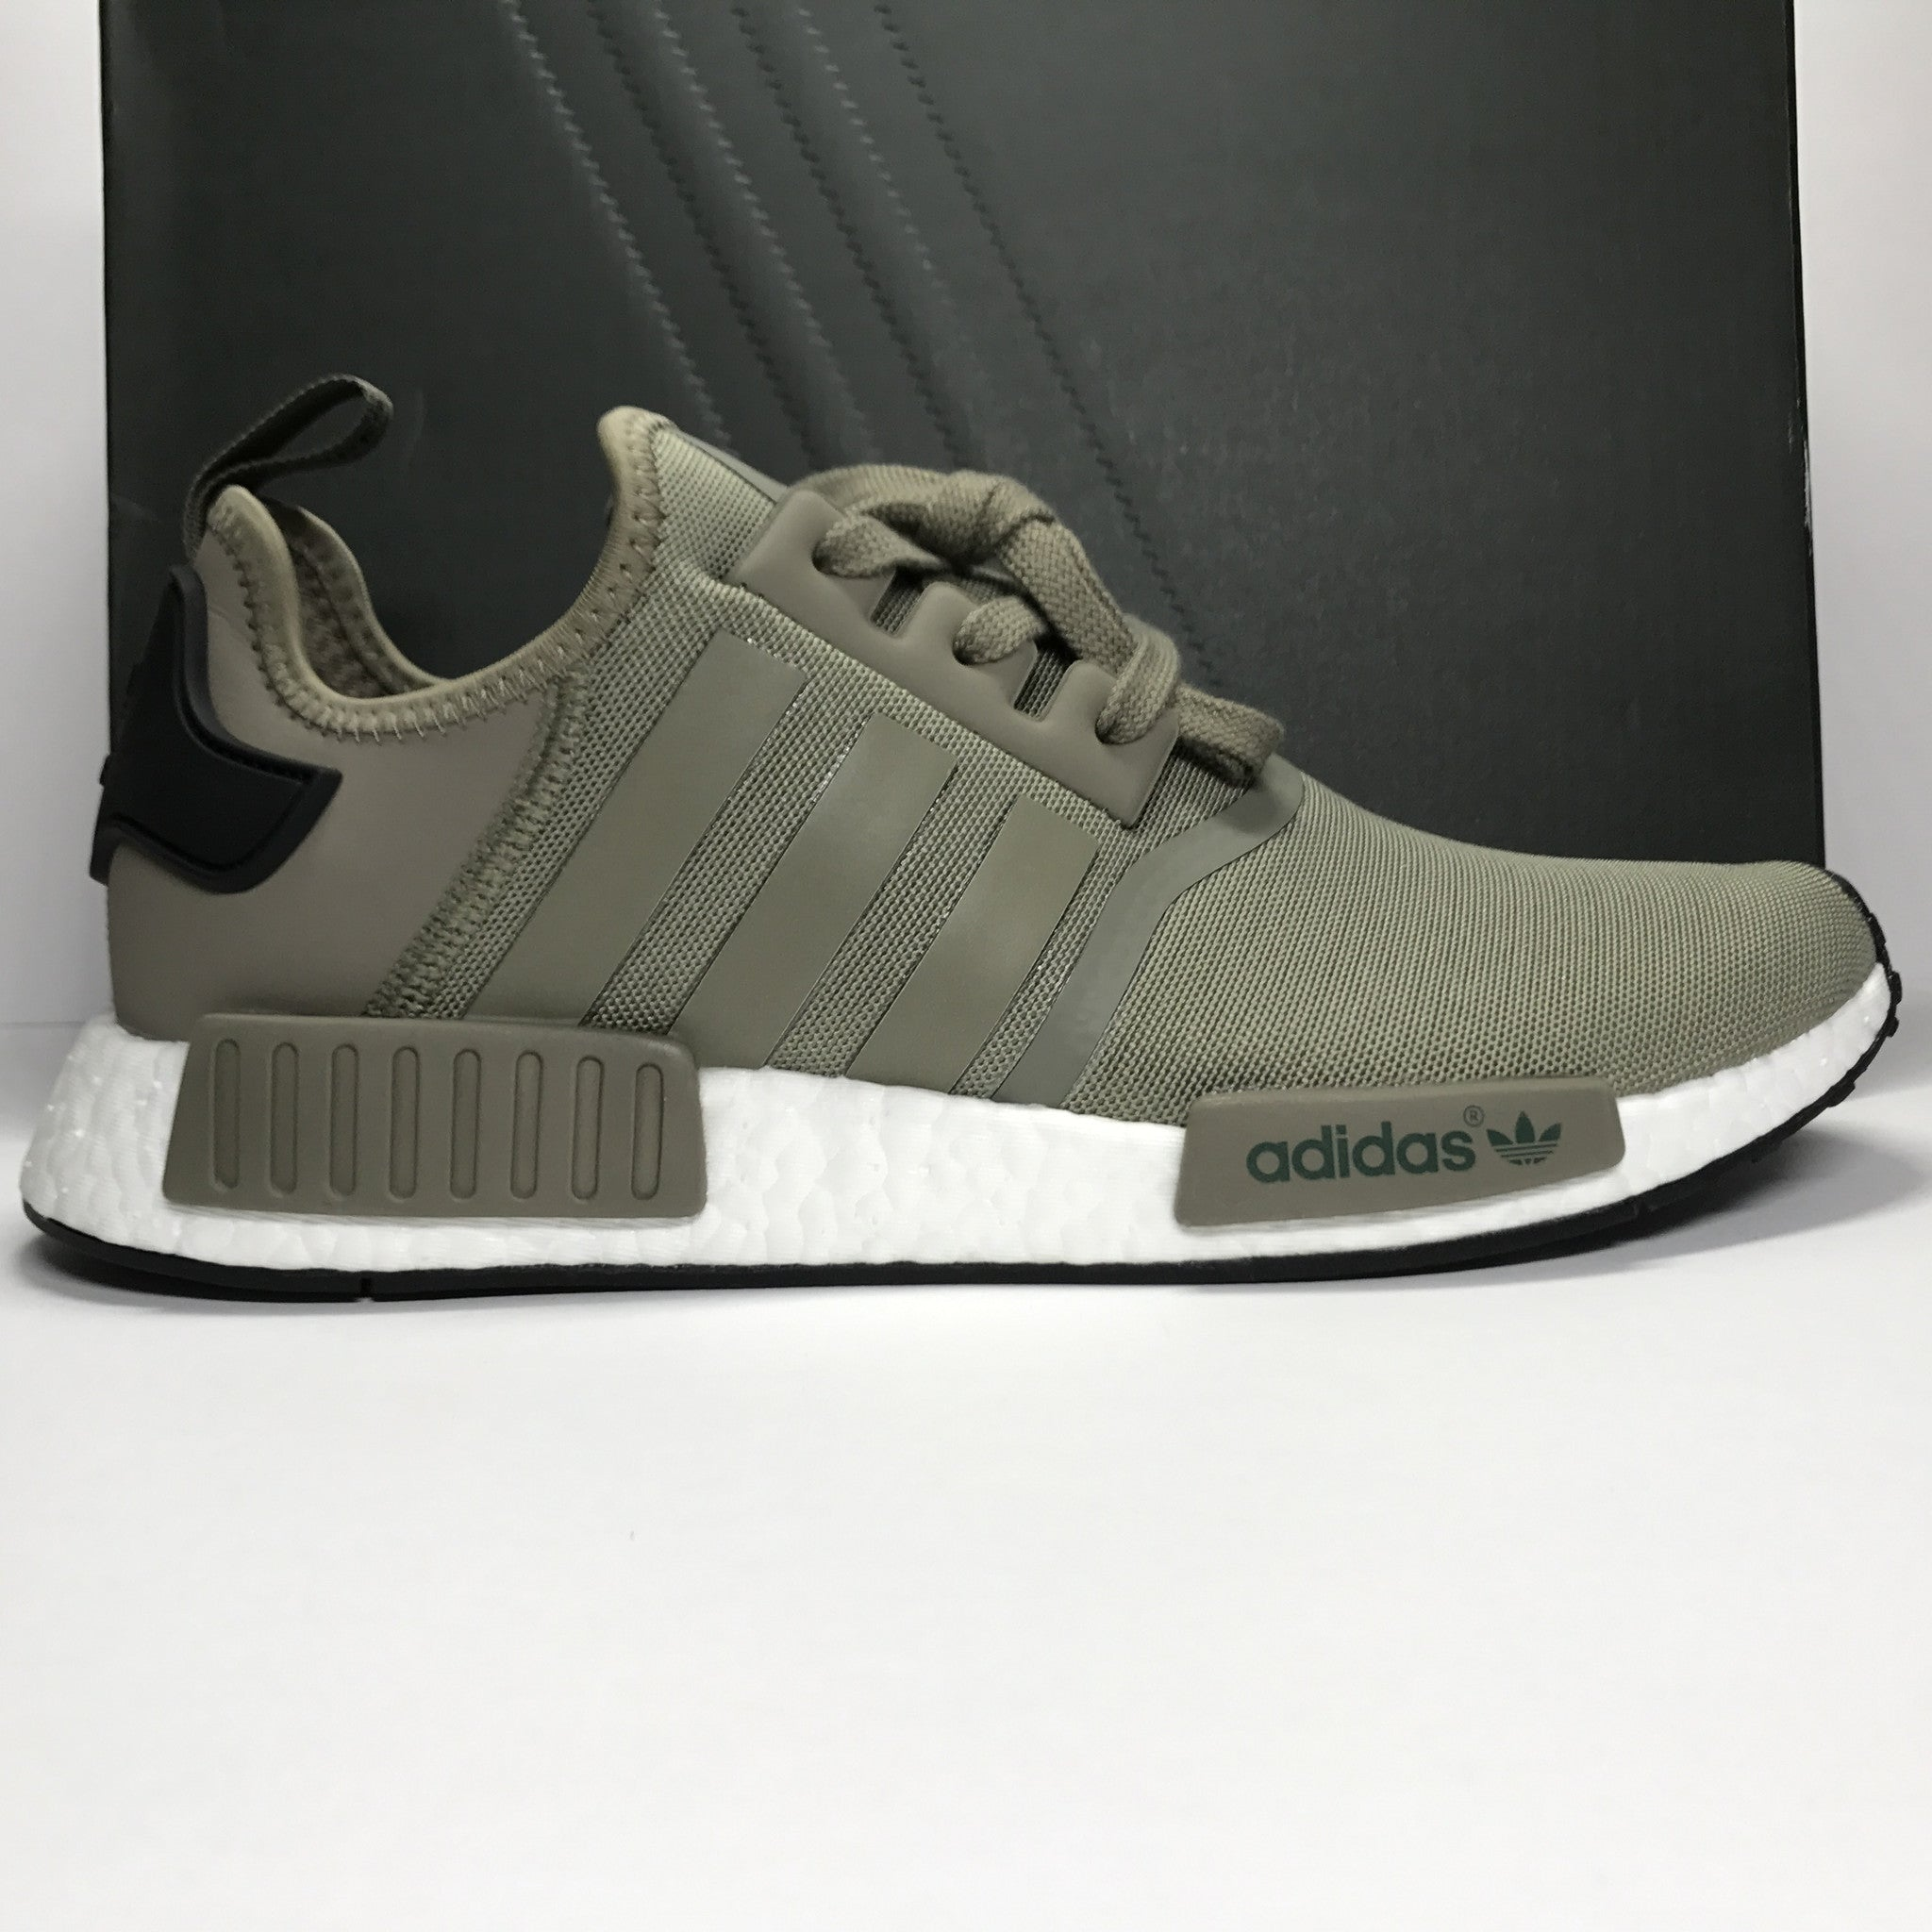 DS Adidas NMD R1 Nomad Olive Trace Cargo Size 10.5